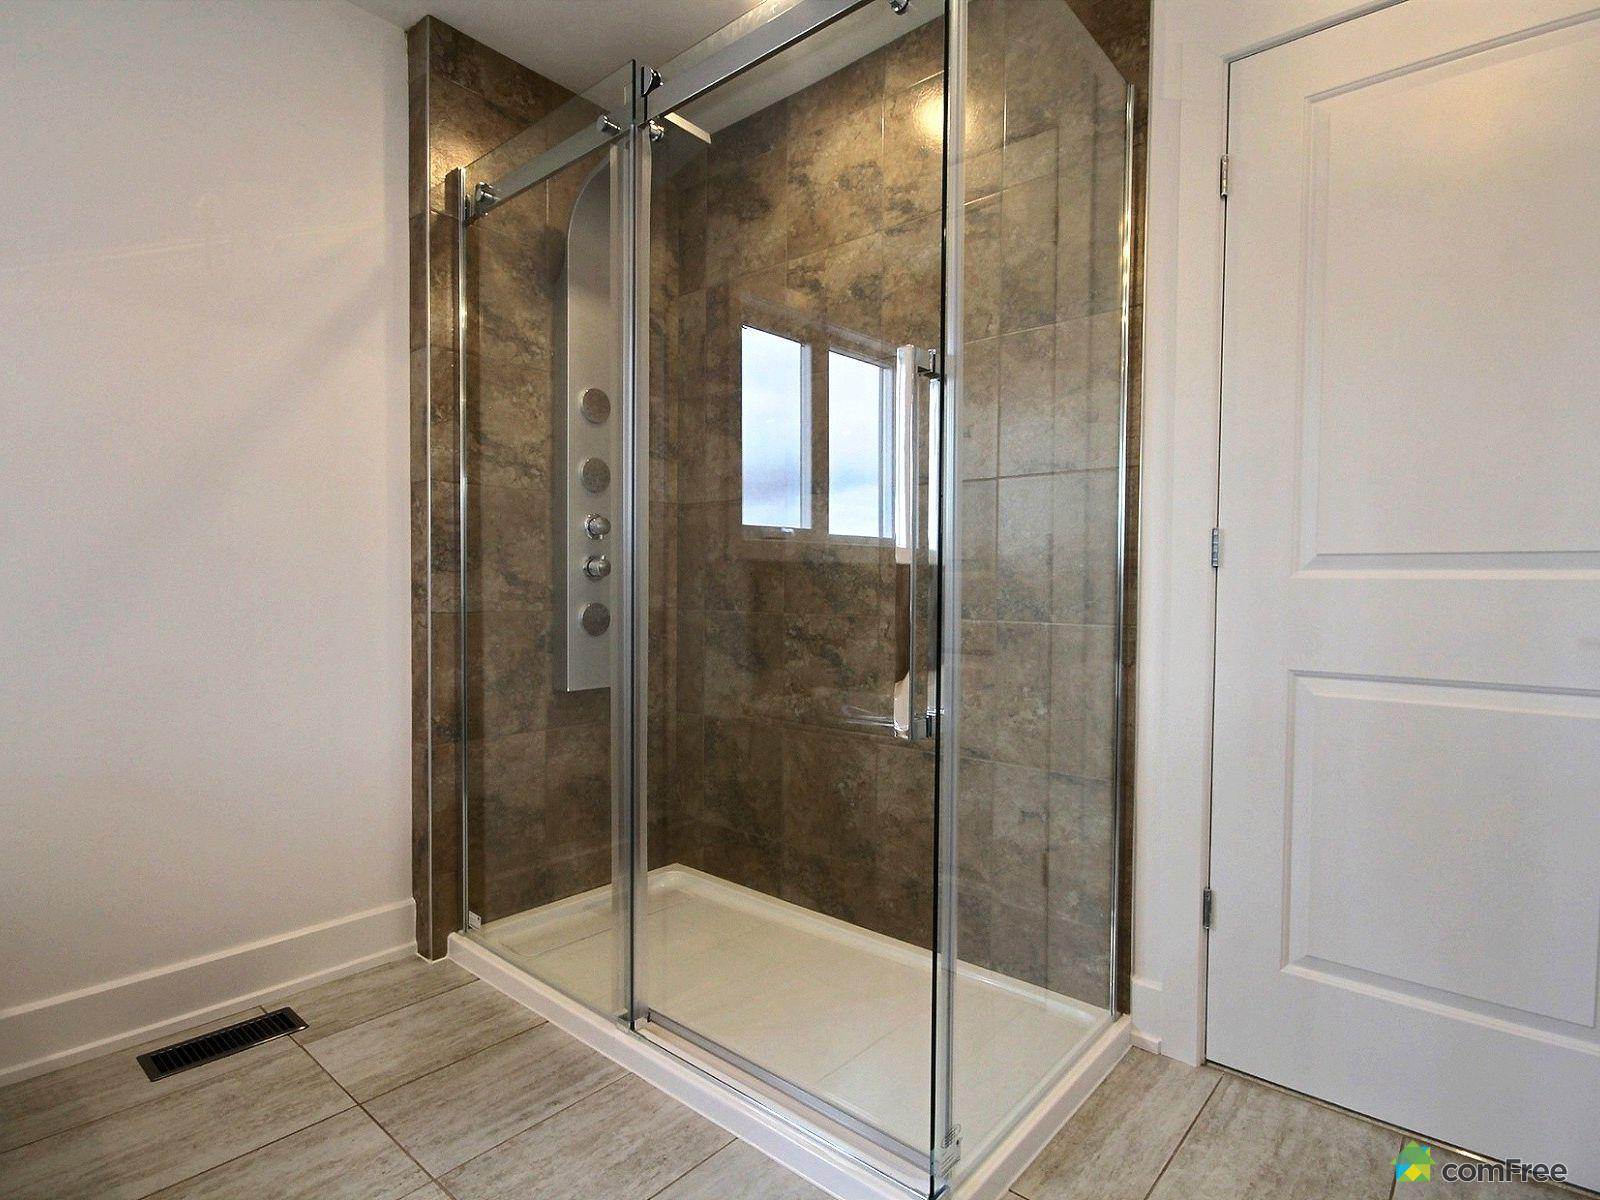 ensuite-new-home-for-sale-rockland-ontario-1600-6589212.jpg